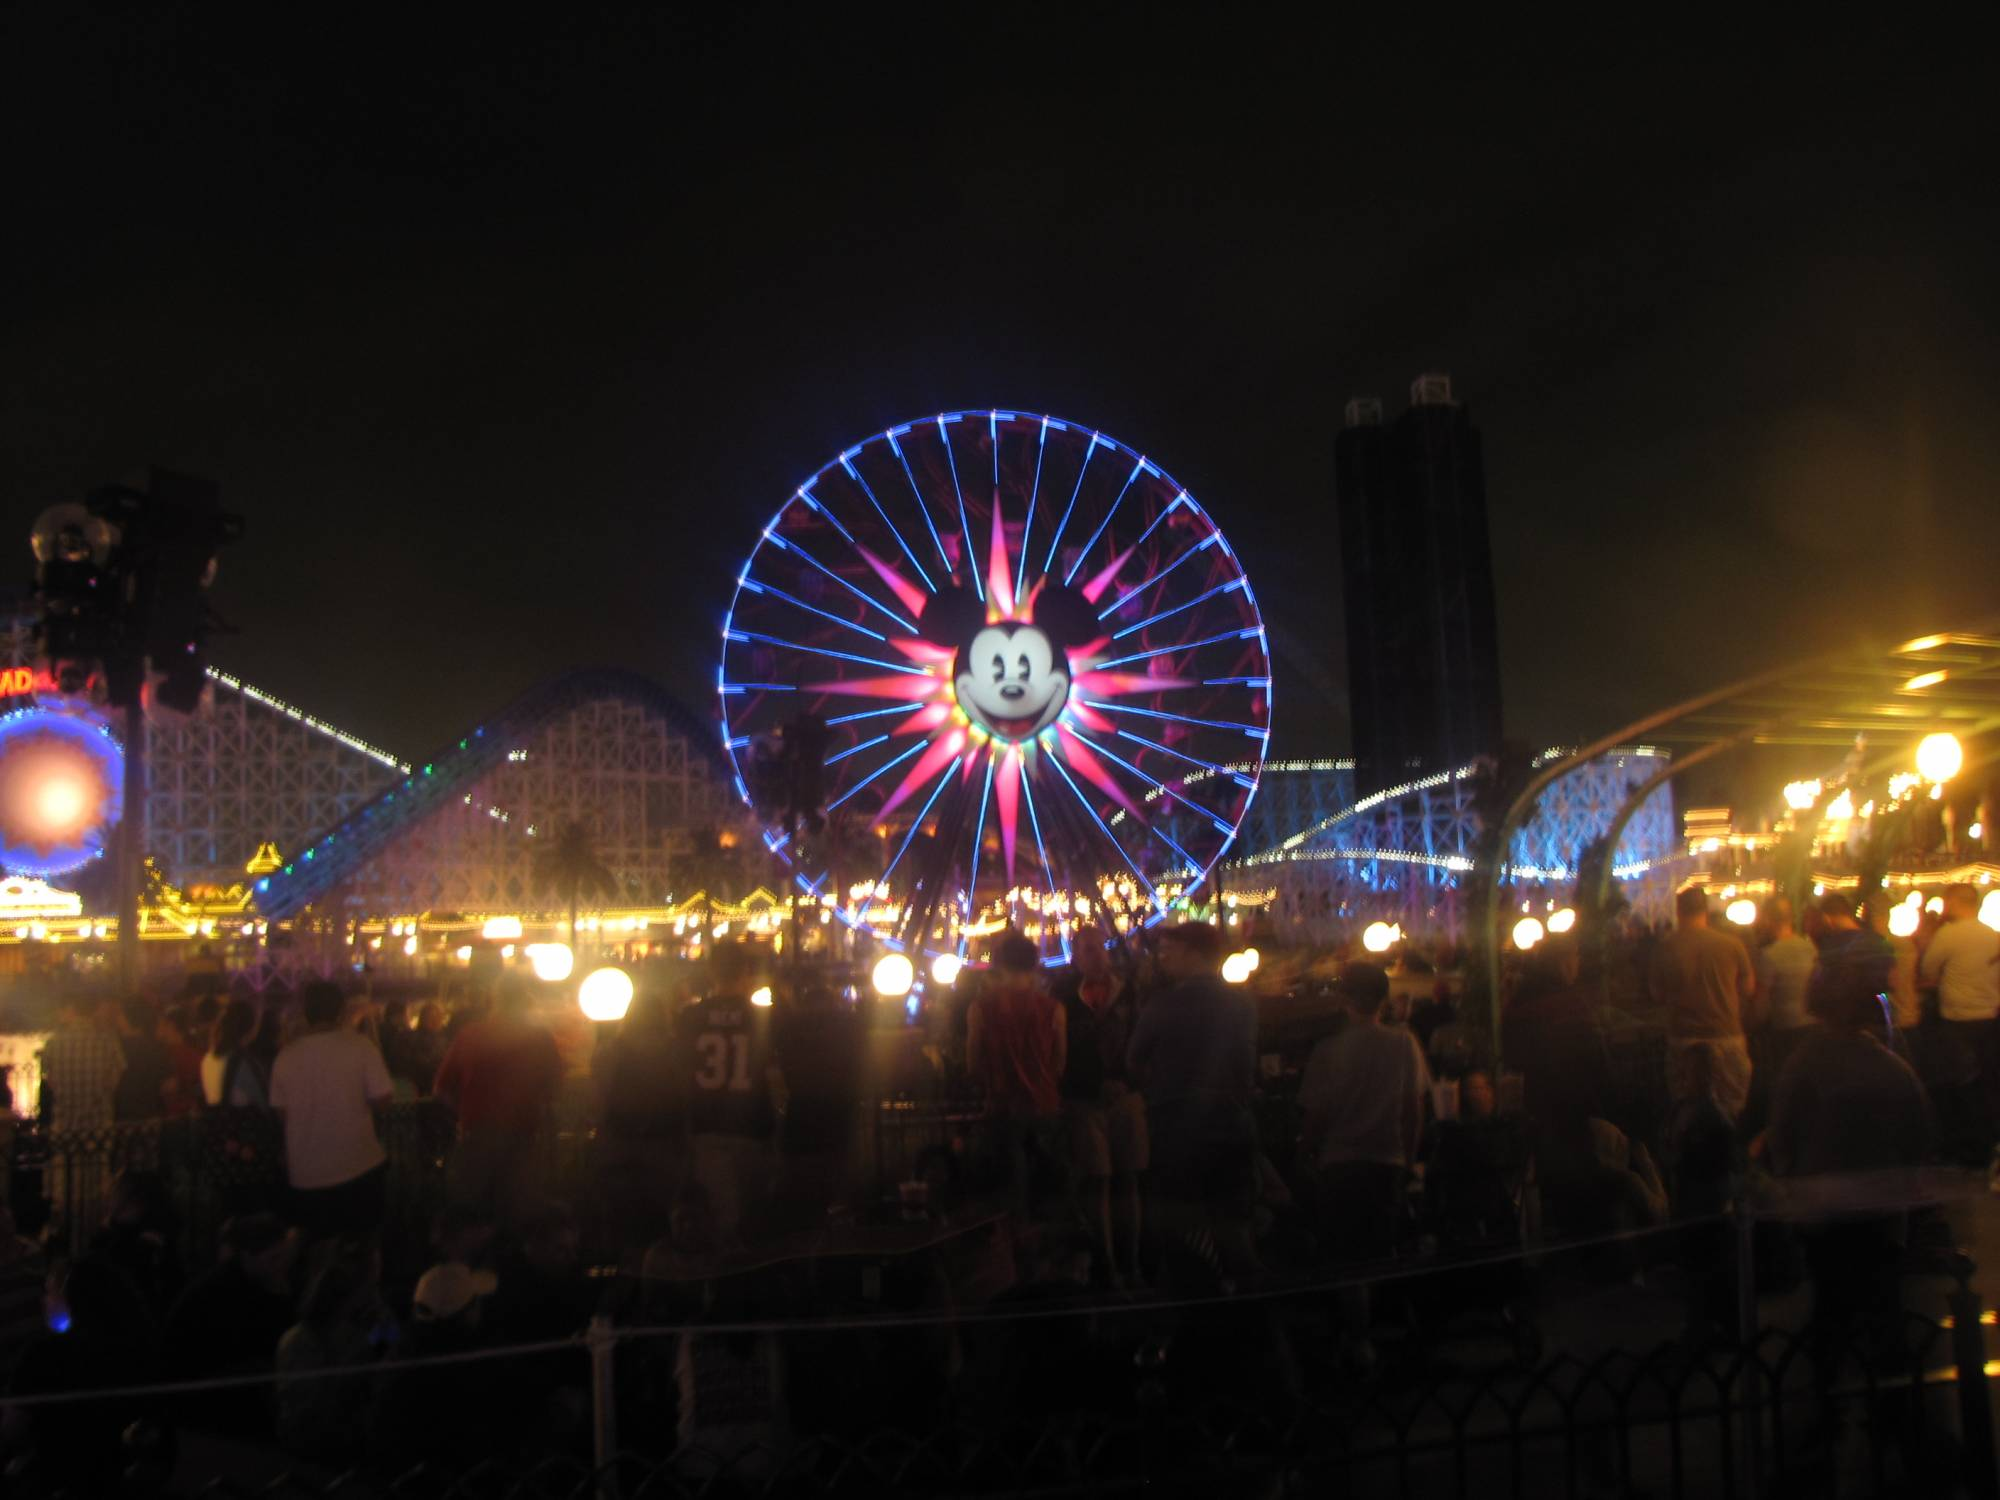 Gwet the best view of World of Color |PassPorter.com